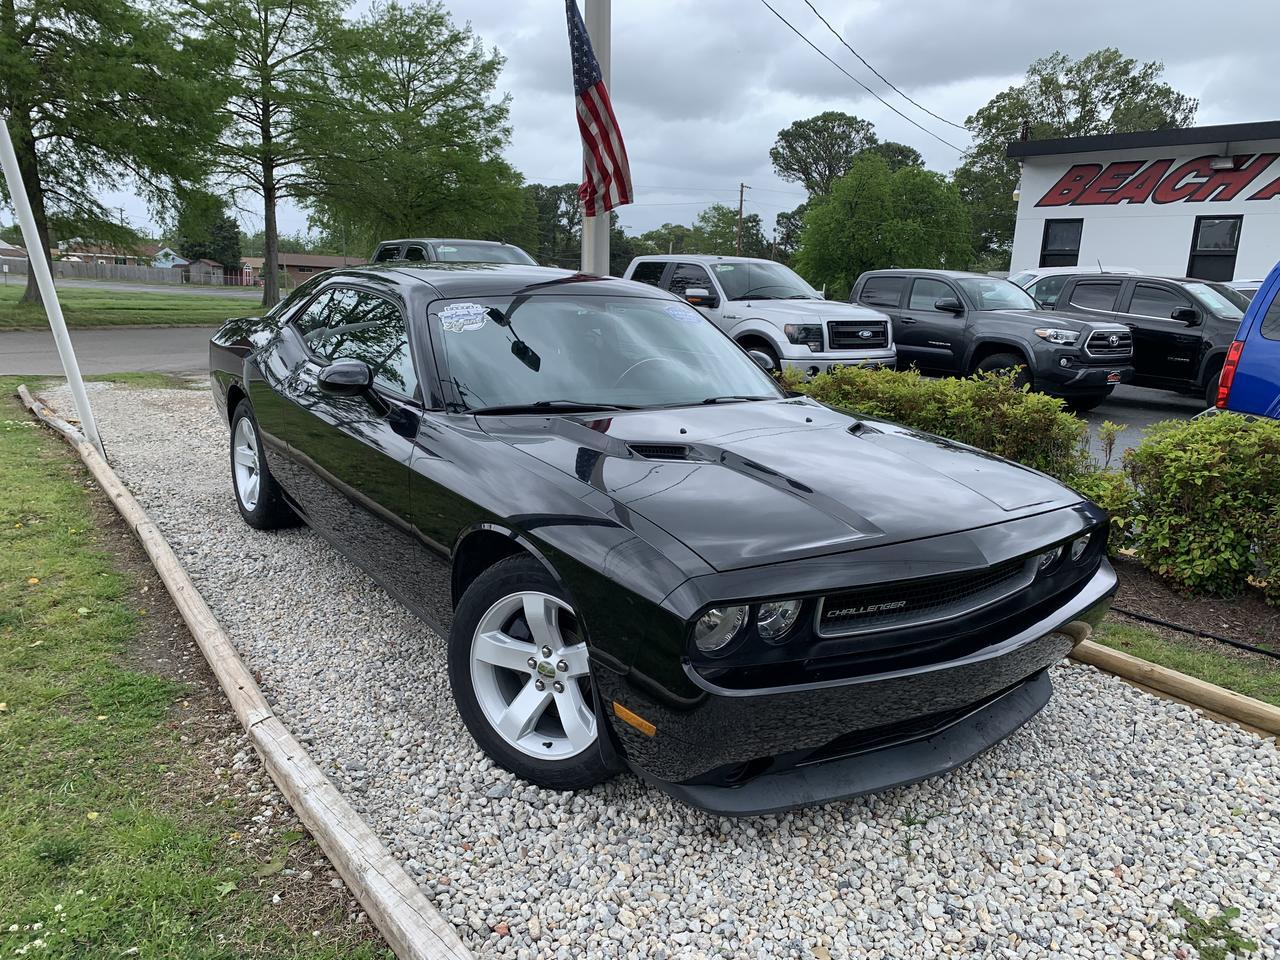 2013 DODGE CHALLENGER SXT, WARRANTY, POWER DRIVERS SEAT, SIRIUS RADIO, A/C, THEFT RECOVERY, 1 OWNER, LOW MILES! Norfolk VA